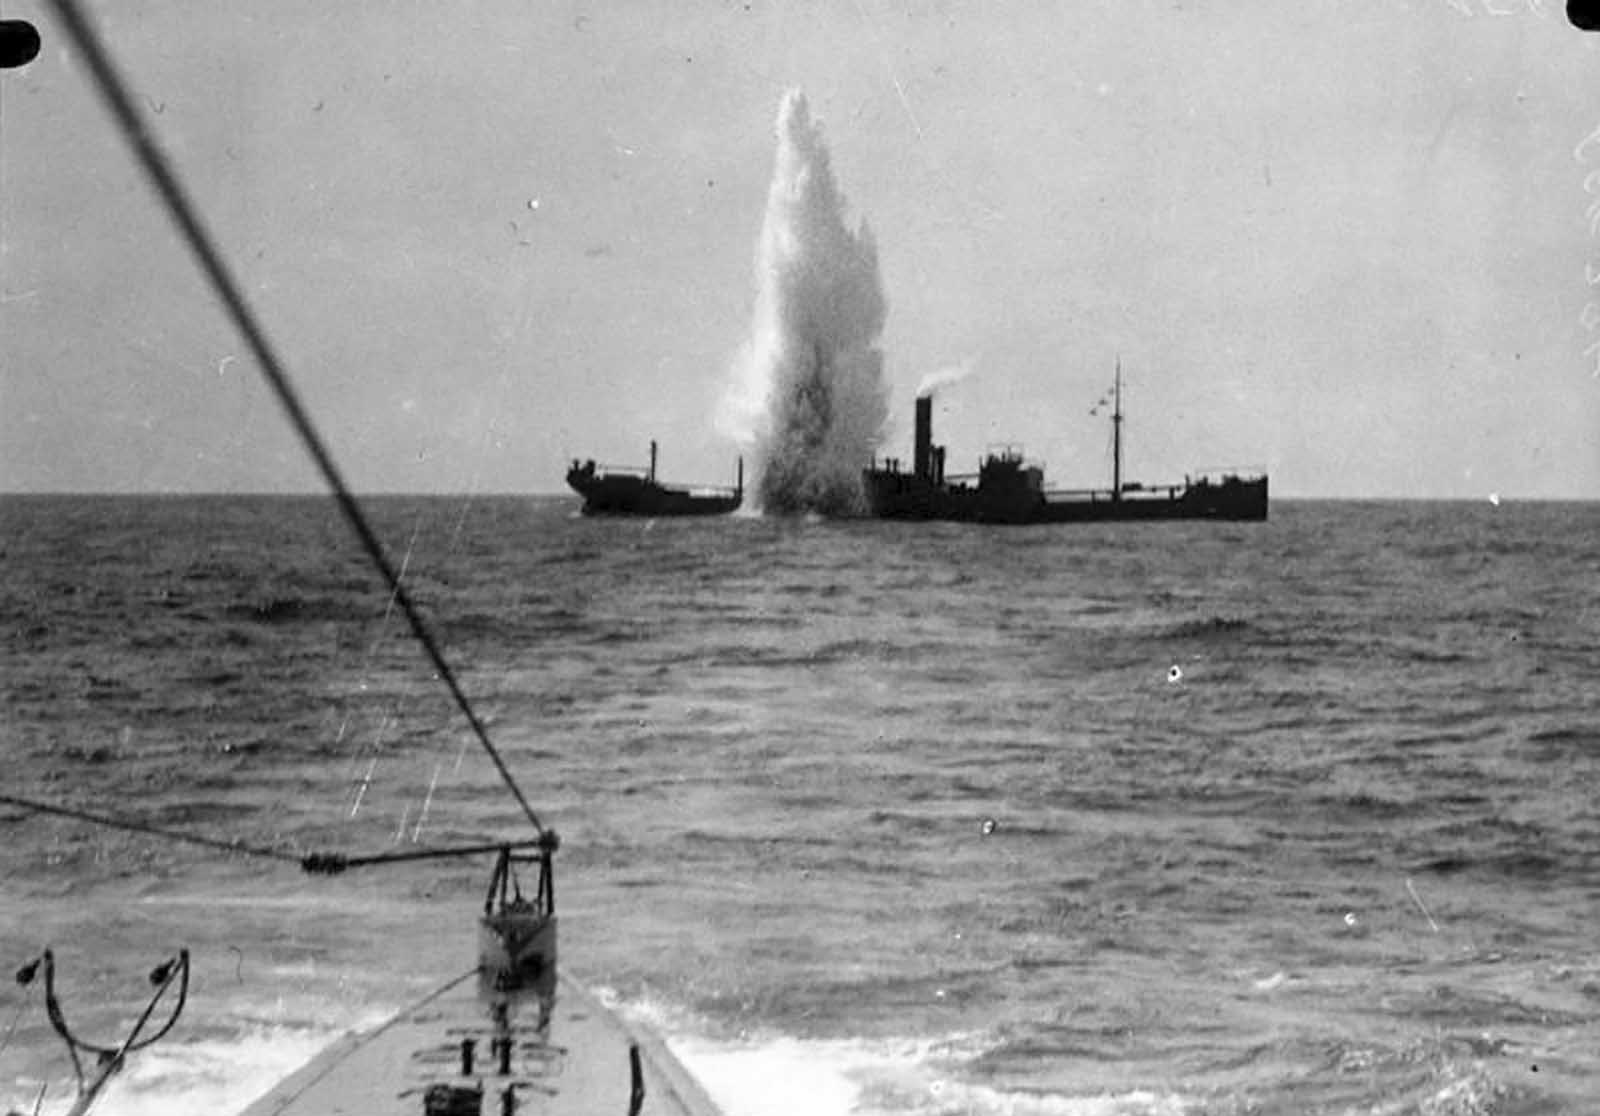 British cargo ship SS Maplewood under attack by German submarine SM U-35 on April 7, 1917, 47 nautical miles/87 km southwest of Sardinia. The U-35 participated in the entire war, becoming the most successful U-boat in WWI, sinking 224 ships, killing thousands.